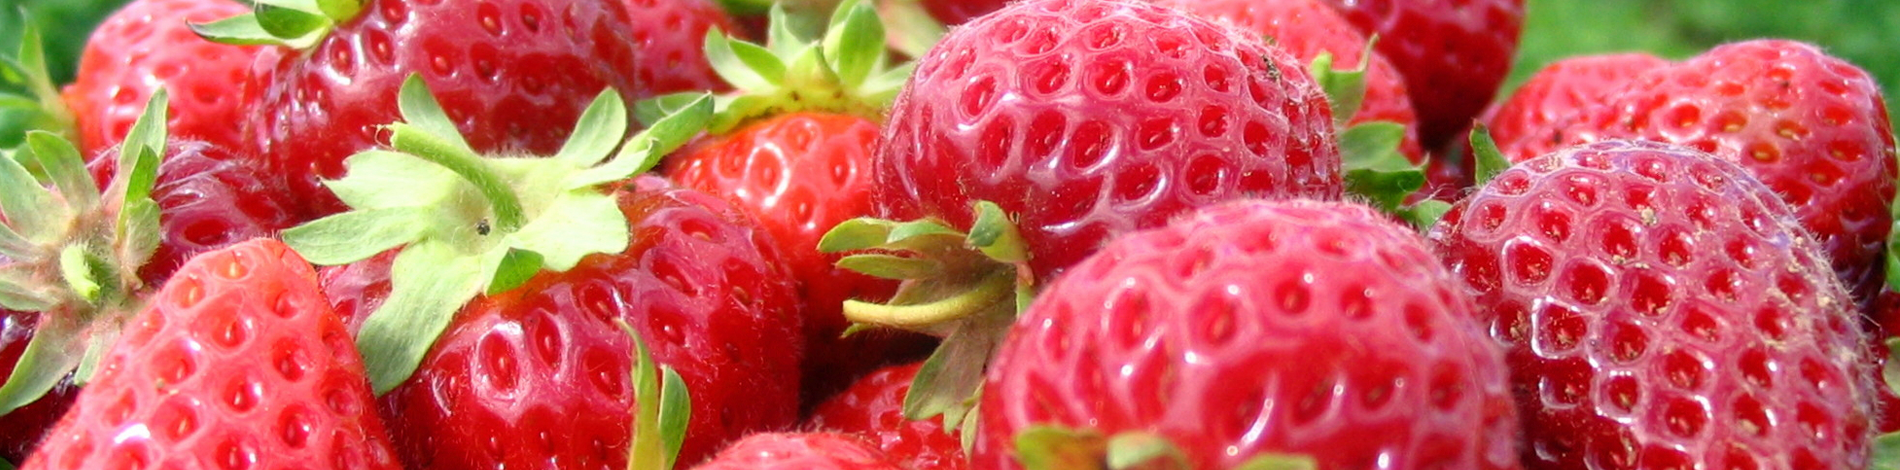 Buy Here Pay Here Raleigh Nc >> 2016 Southeast Strawberry Expo - NC Strawberry Association